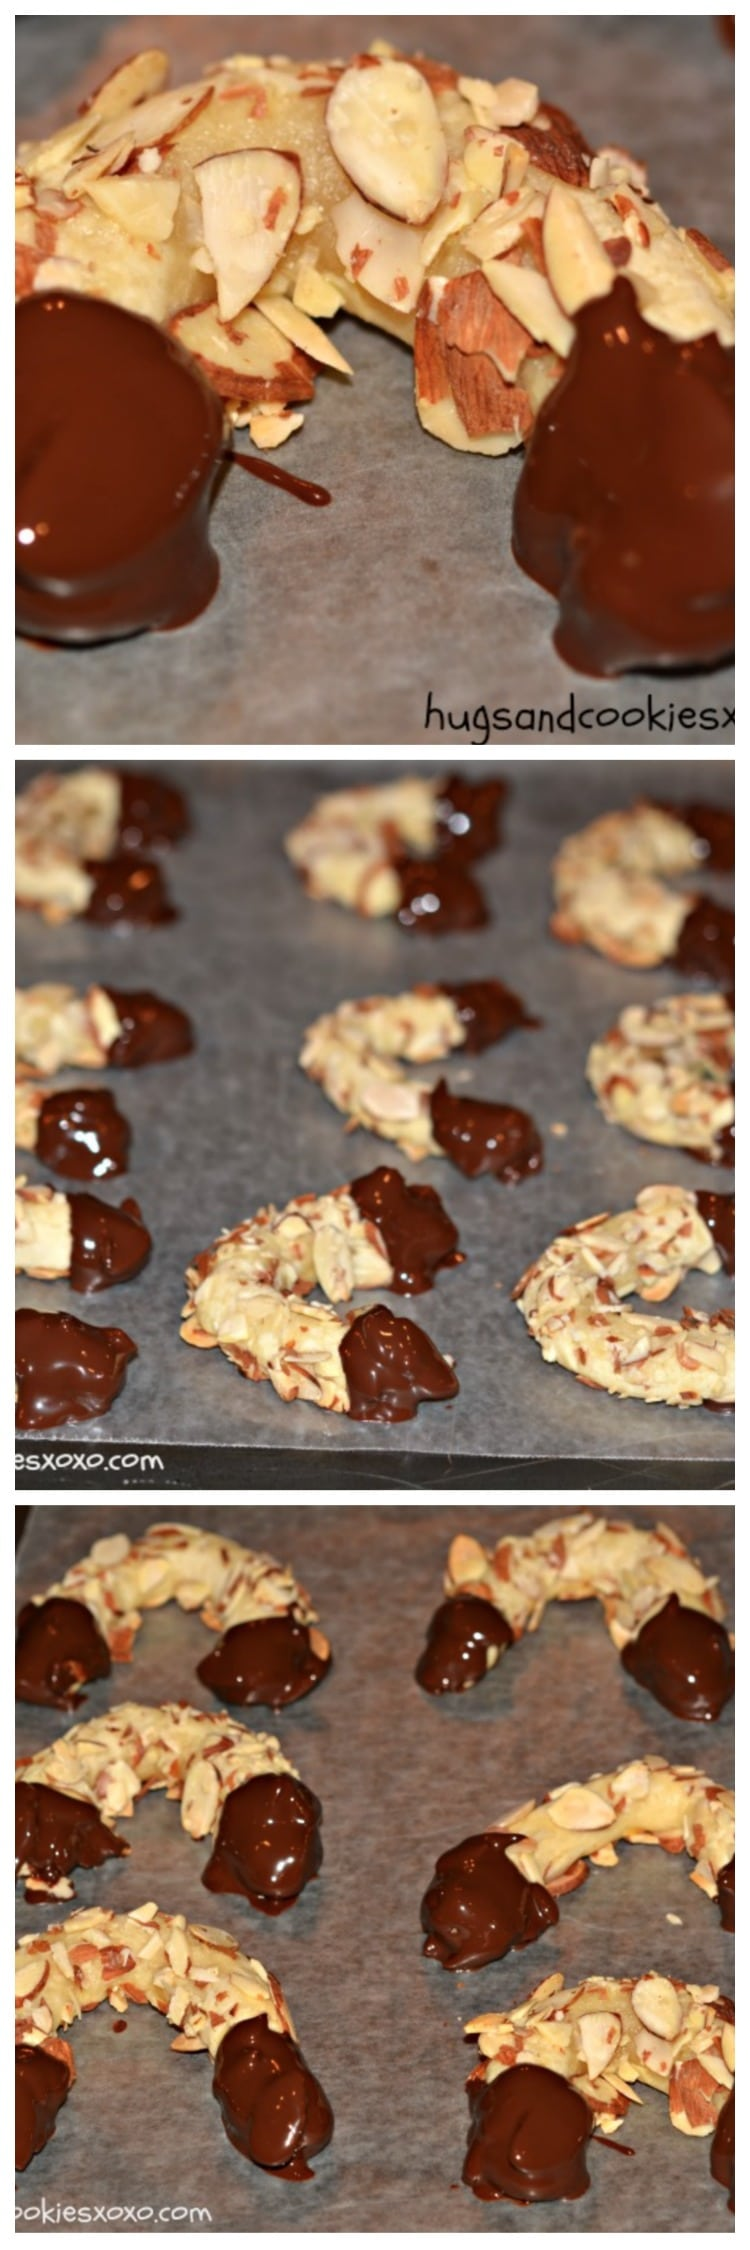 Chocolate Dipped Almond Horns - Hugs and Cookies XOXO